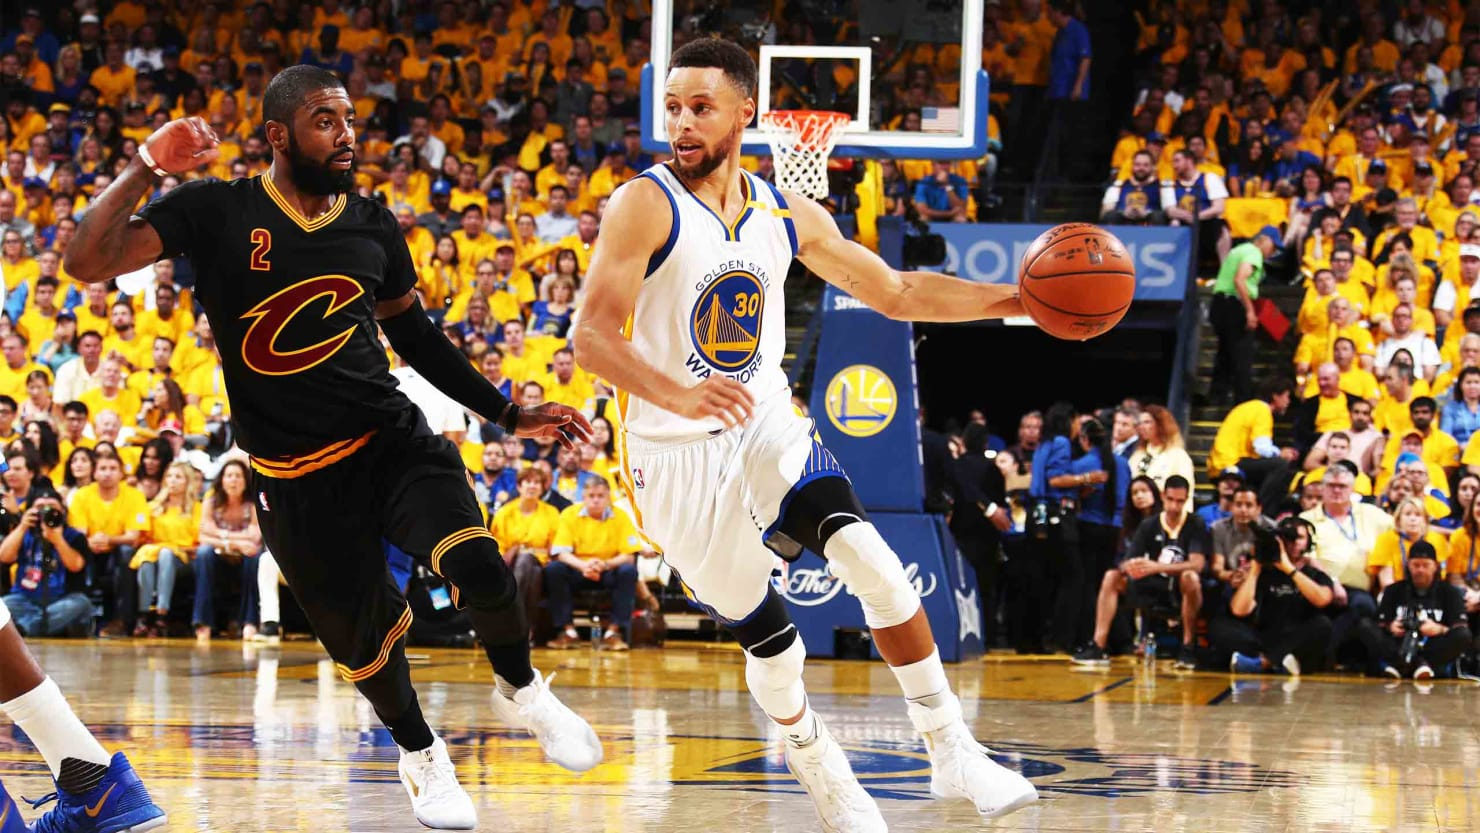 2017 NBA Final Golden State Warriors vs. Cleveland Cavaliers: How to Watch Live Stream Online